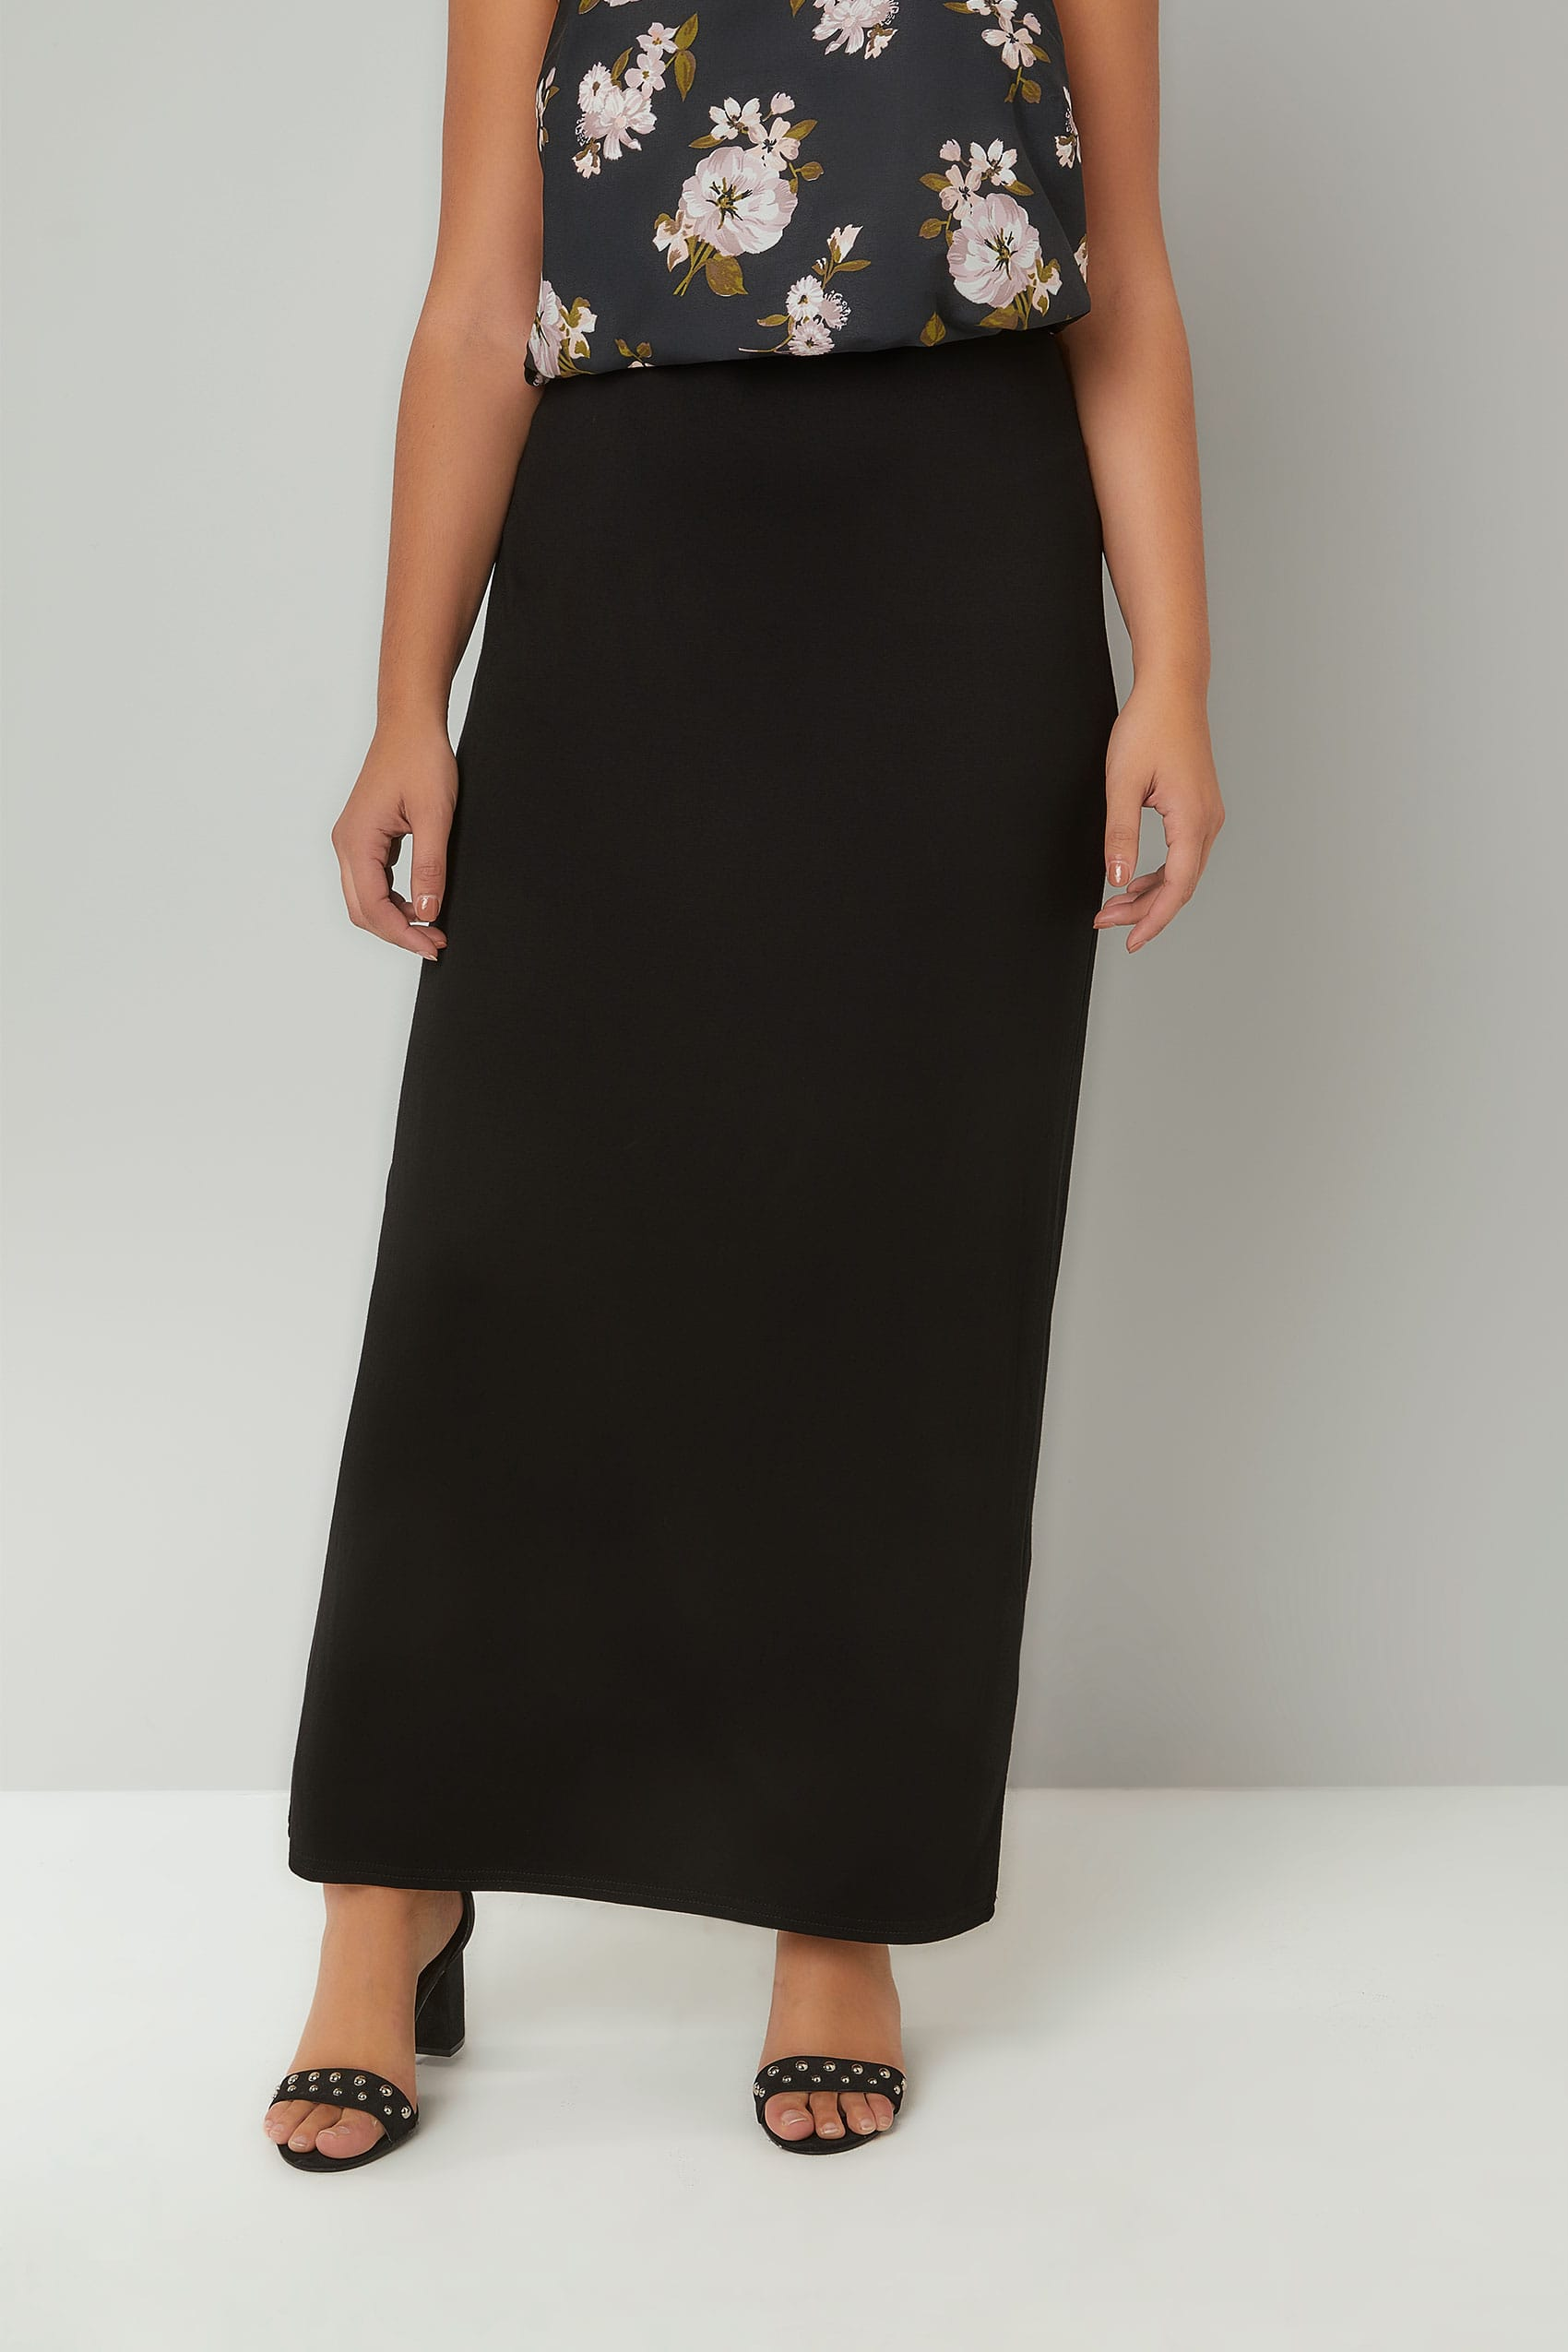 acda7b9e1e58 Plus Size Maxi Skirts Black Jersey Maxi Tube Skirt